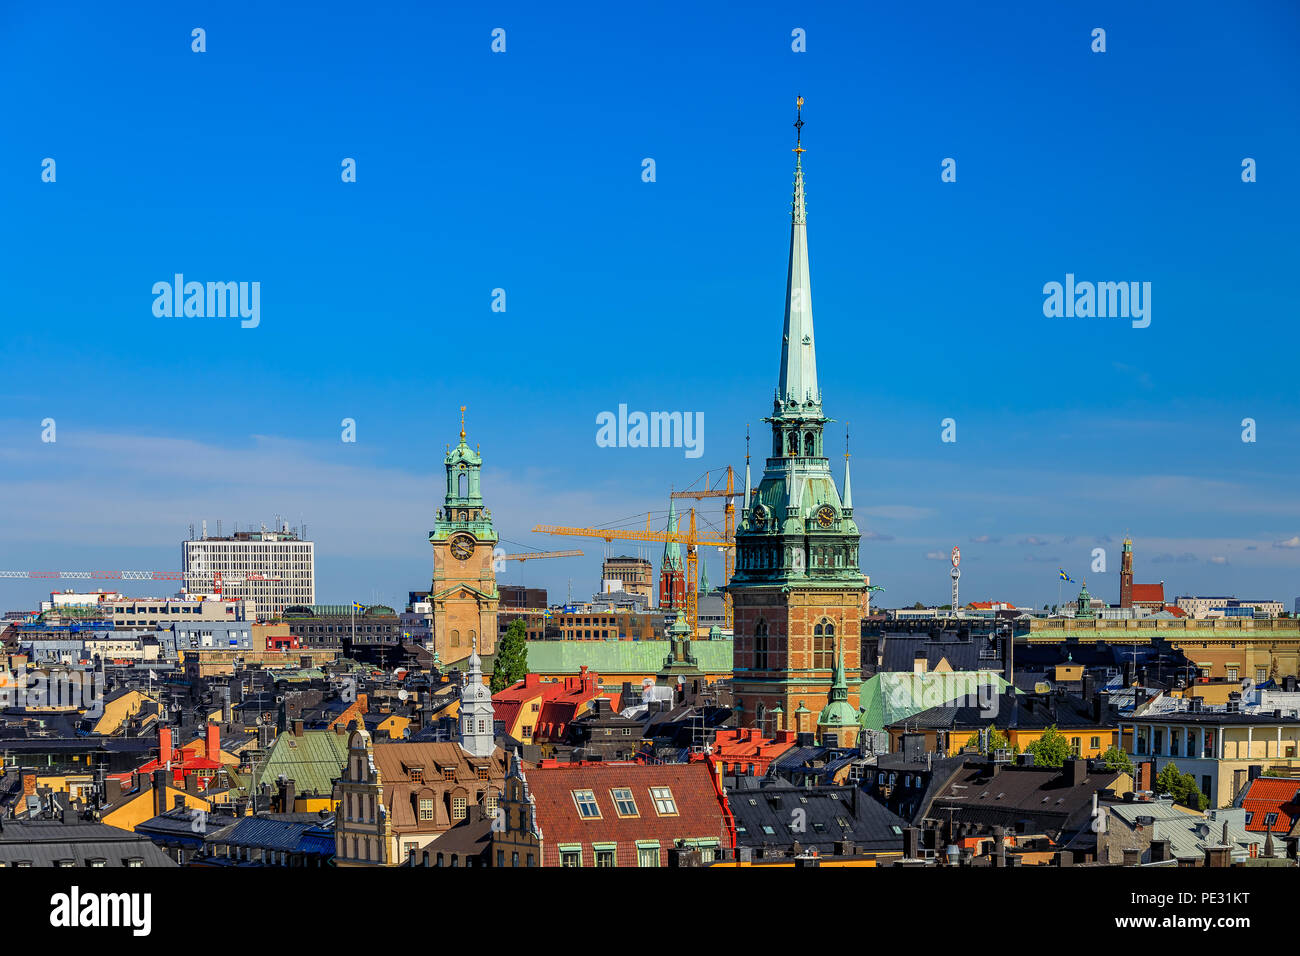 Rooftops of traditional gothic buildings in the old town part of Sodermalm island in Stockholm, Sweden - Stock Image